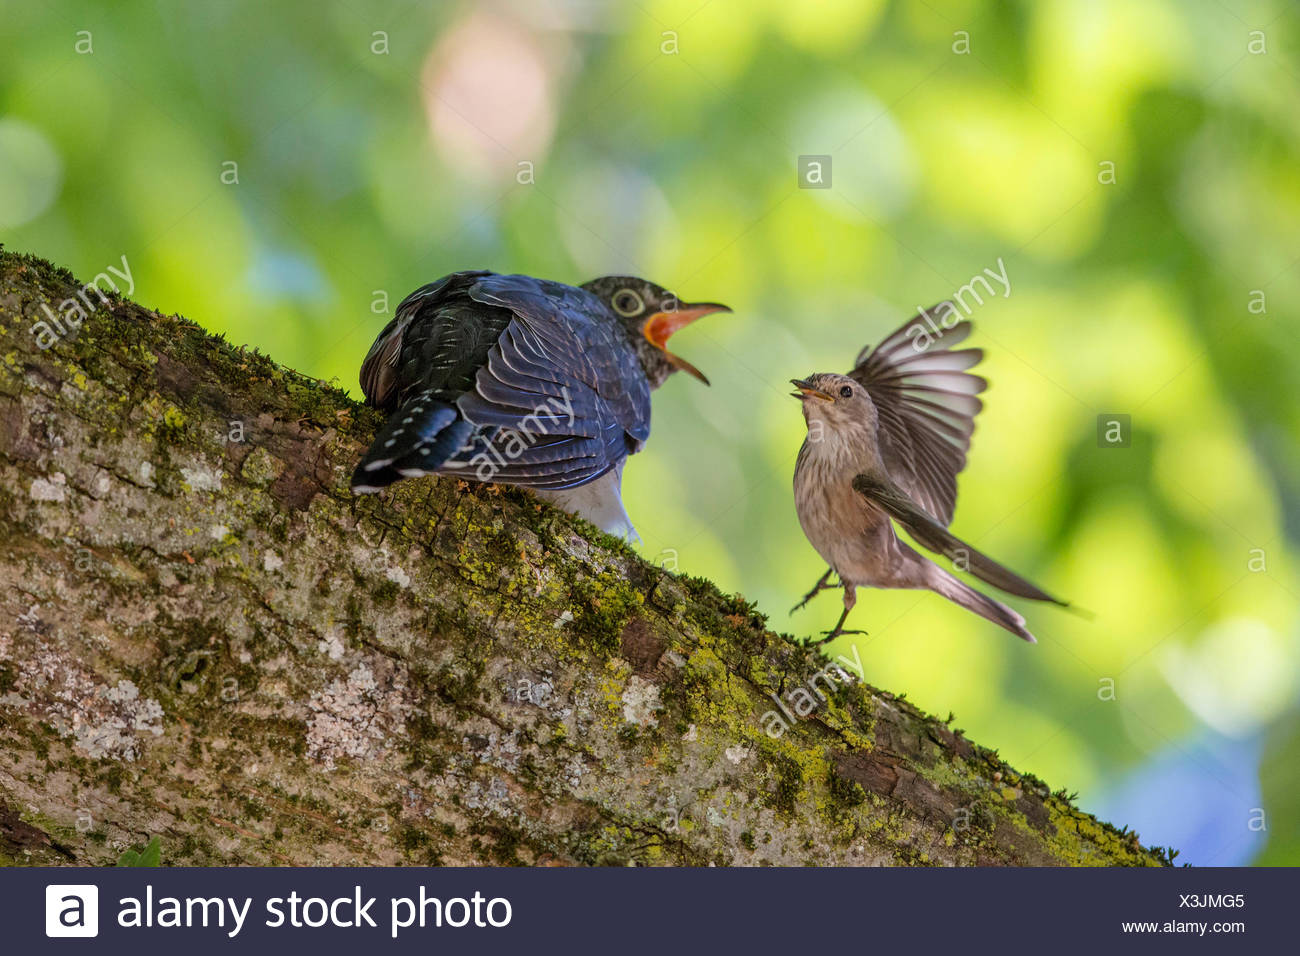 Eurasian cuckoo (Cuculus canorus), Spotted Flycatcher feeding young cuckoo, Germany, Bavaria - Stock Image